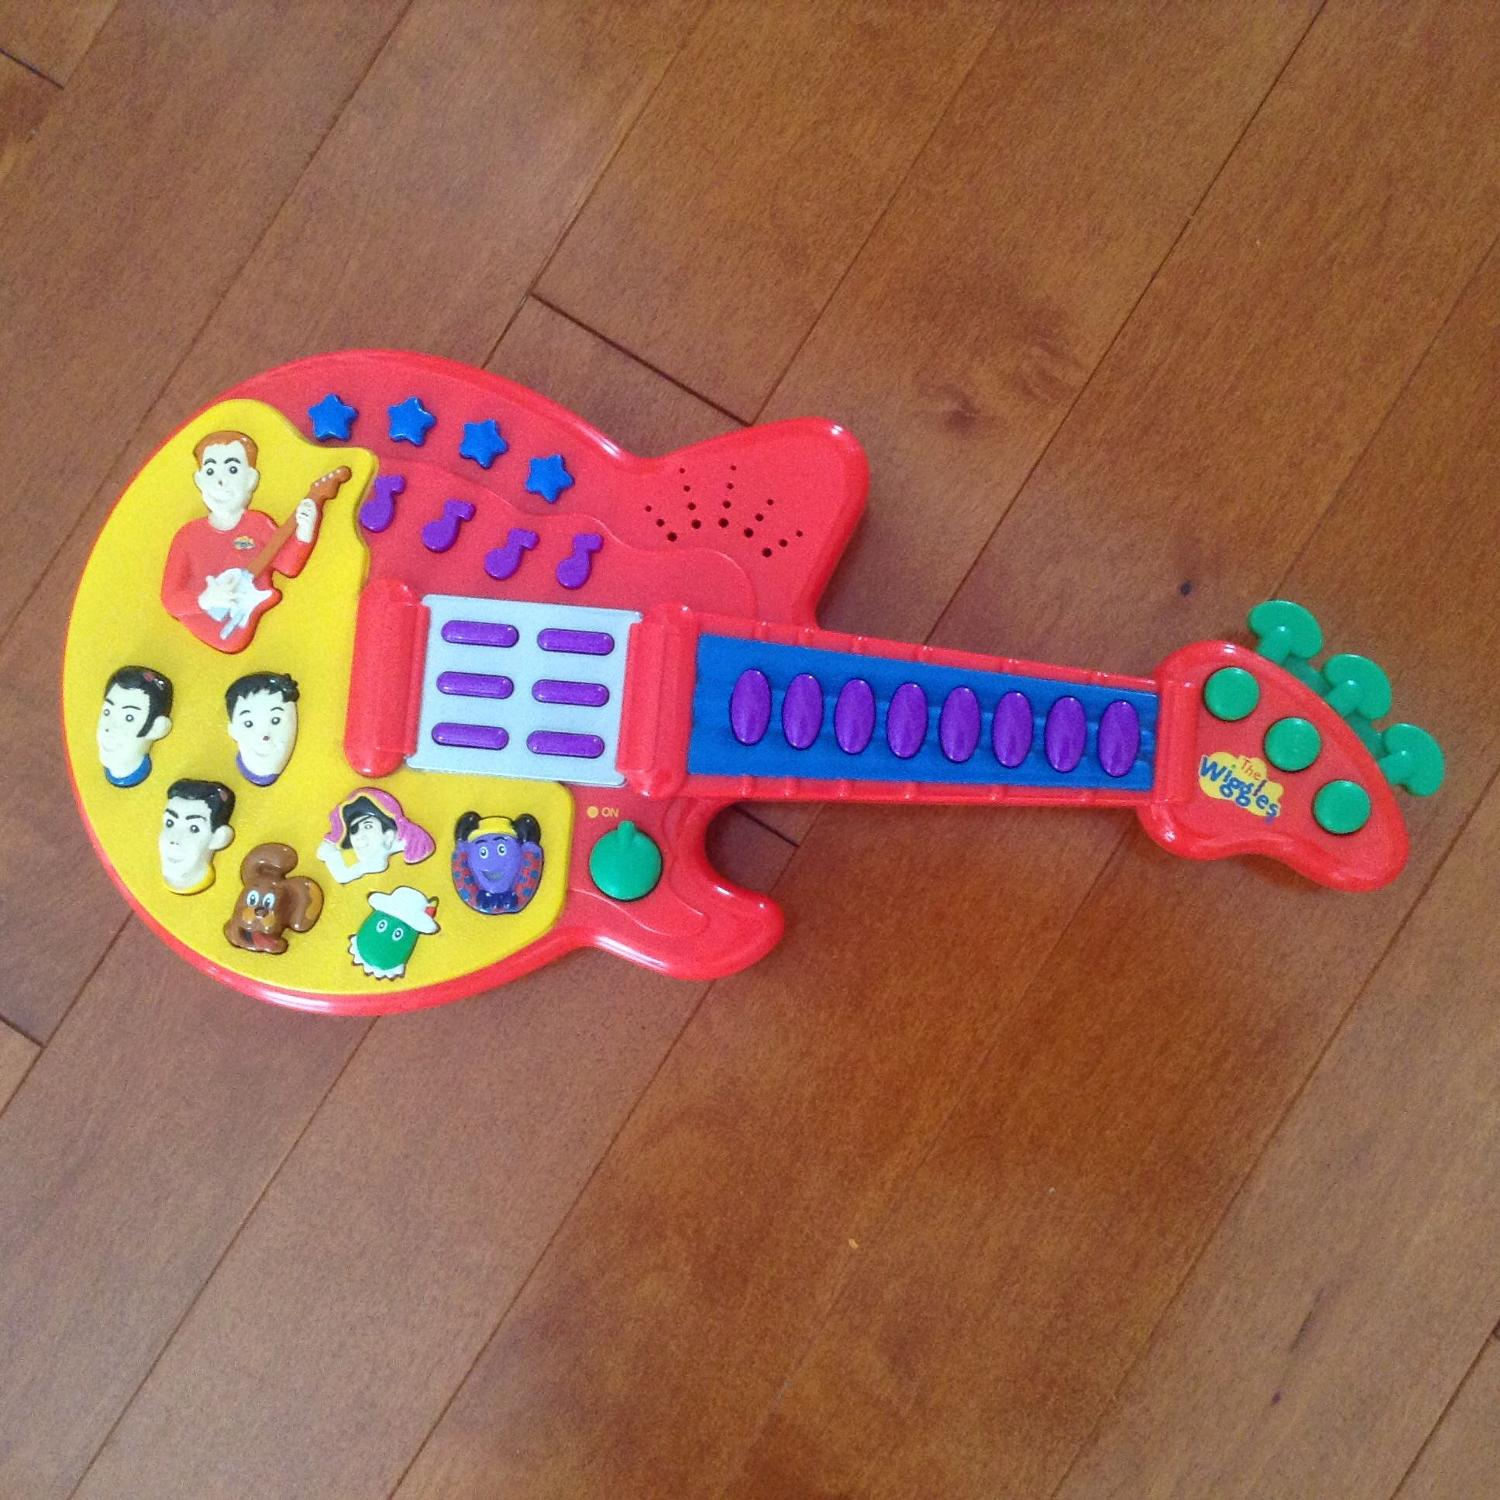 The Wiggles Toy Guitar